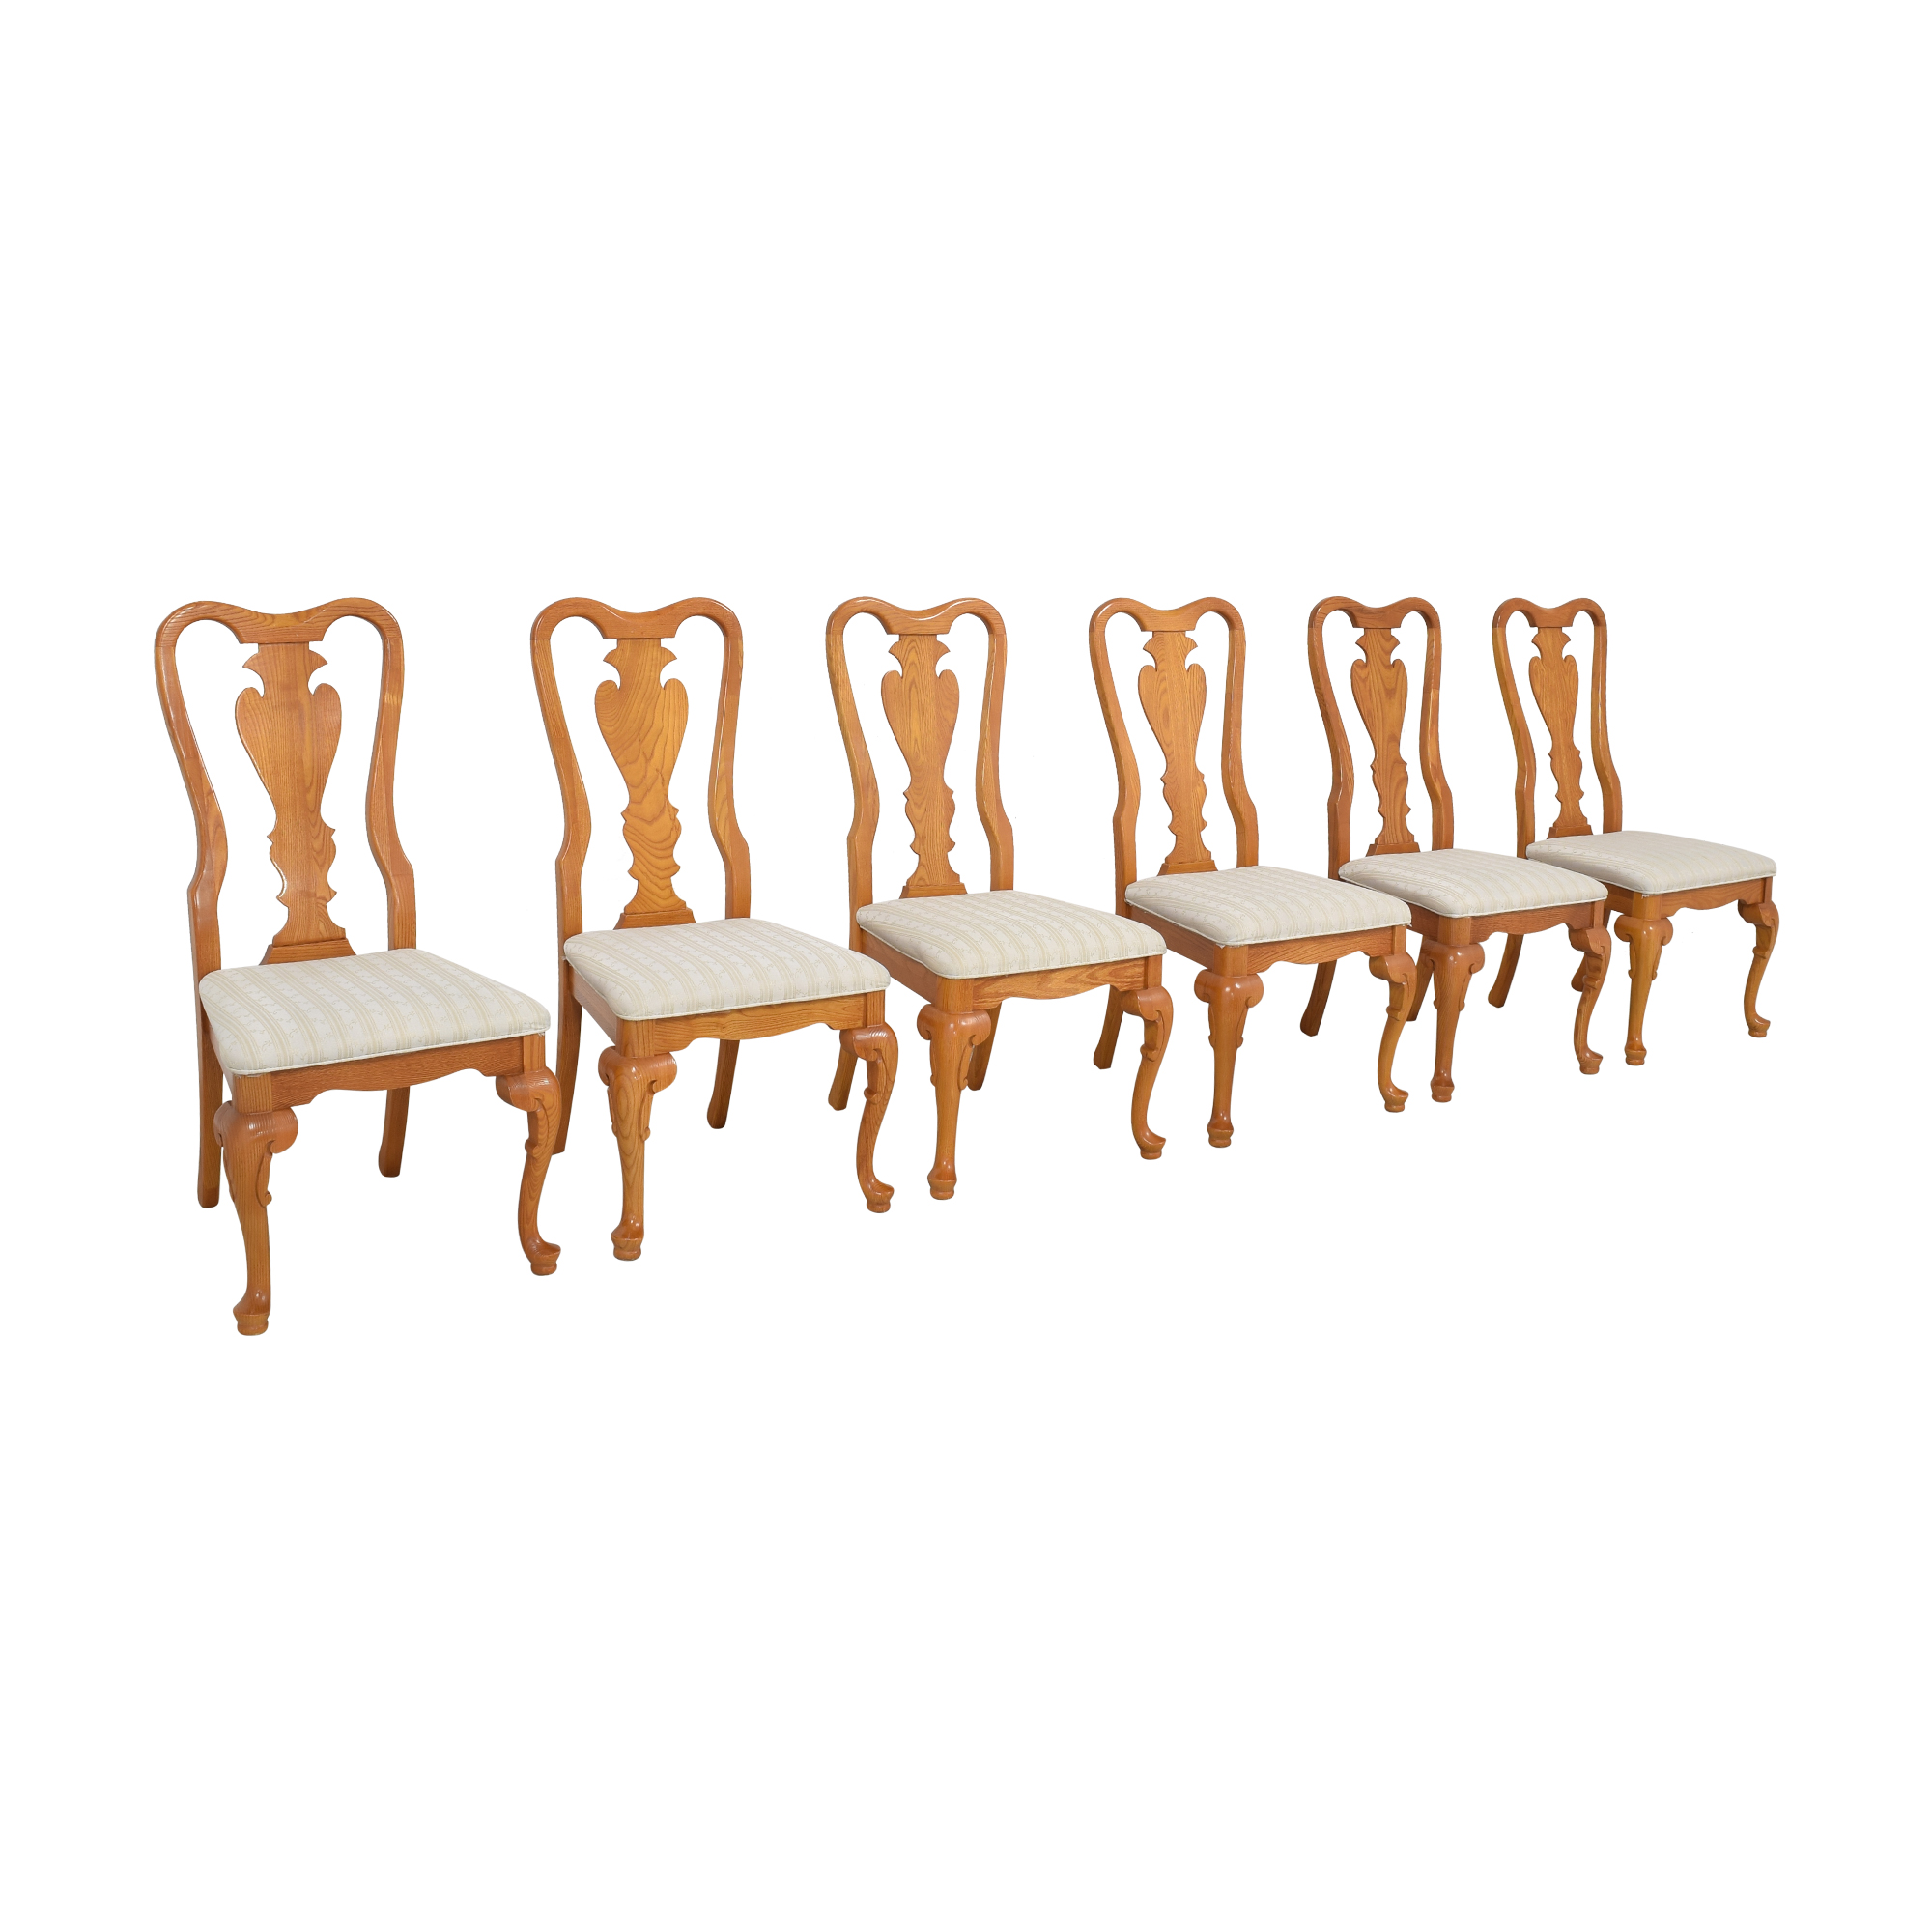 Sumter Cabinet Company Dining Chairs Sumter Cabinet Co.